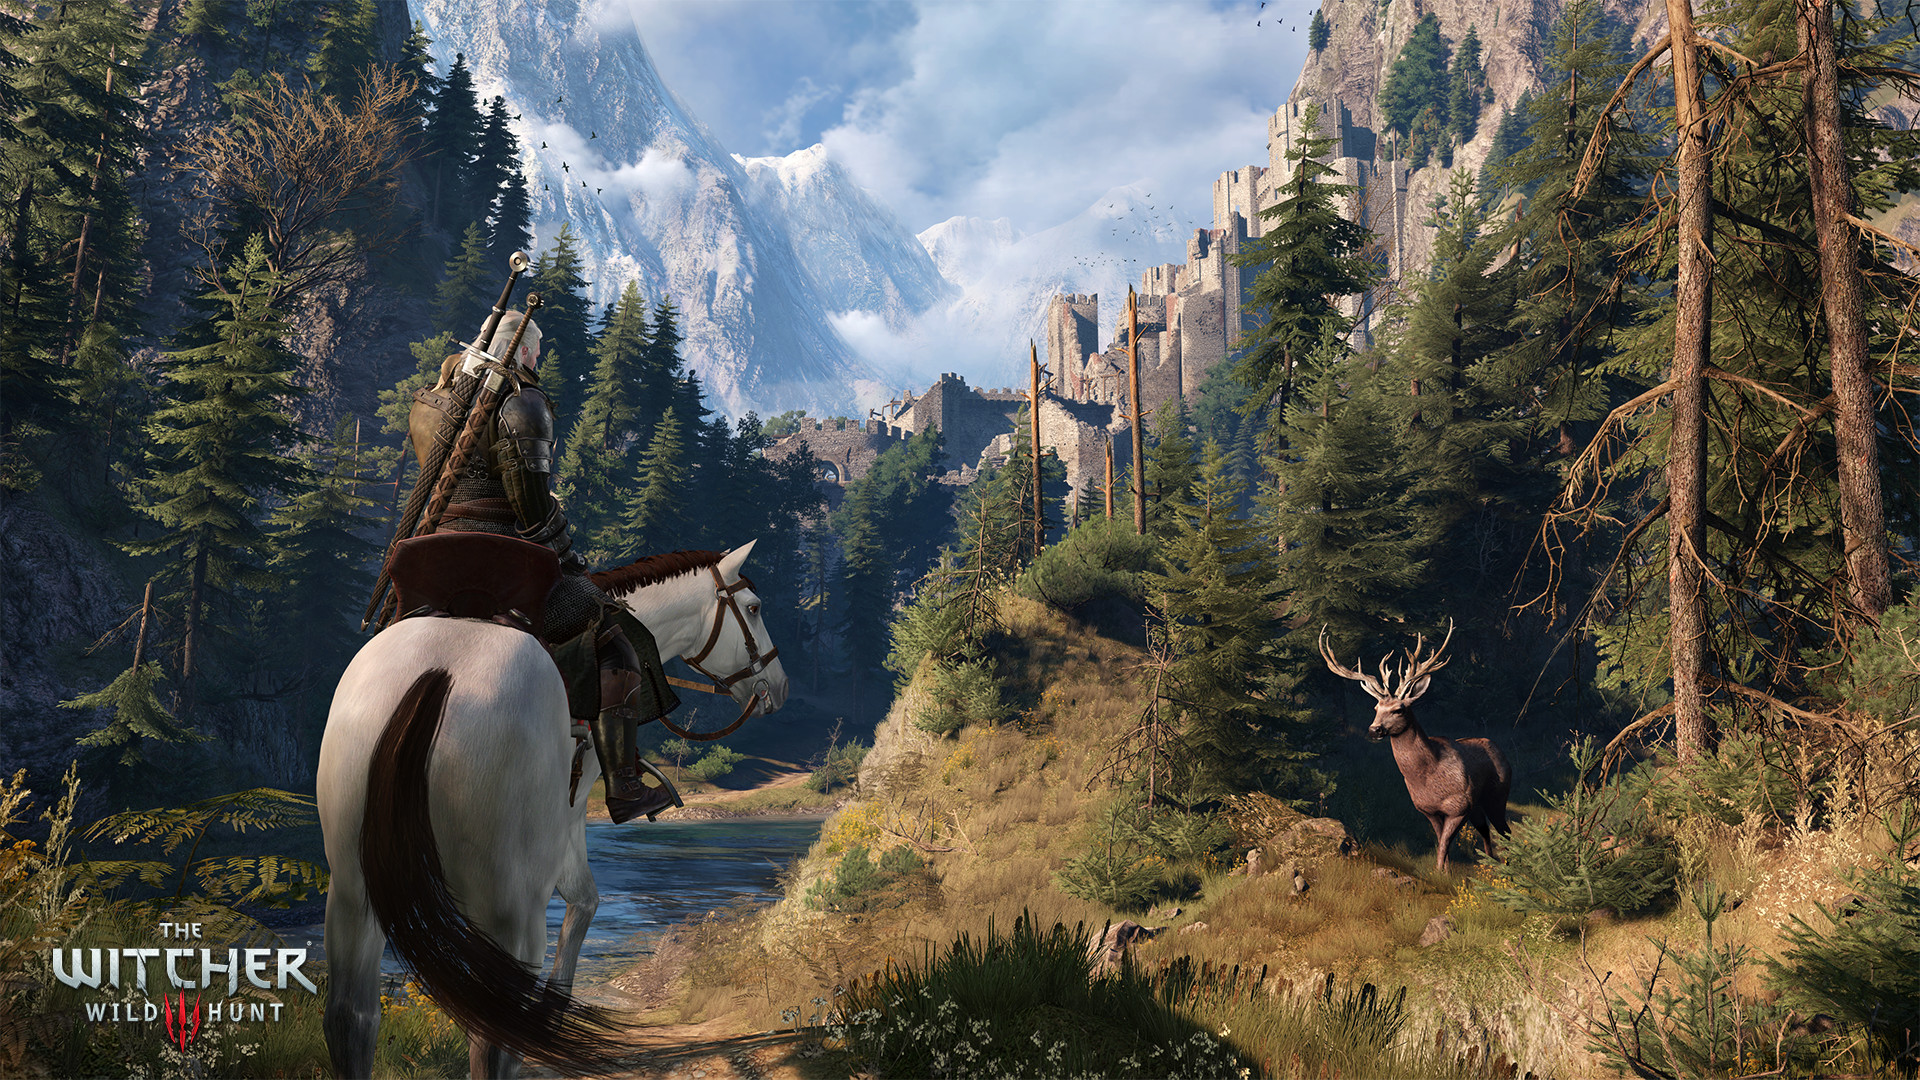 The Witcher 3 Wild Hunt ESPAÑOL PC Full + 16 DLC + Update v1.10 + Hearts Of Stone DLC + REPACK 6 DVD5 (JPW) 10